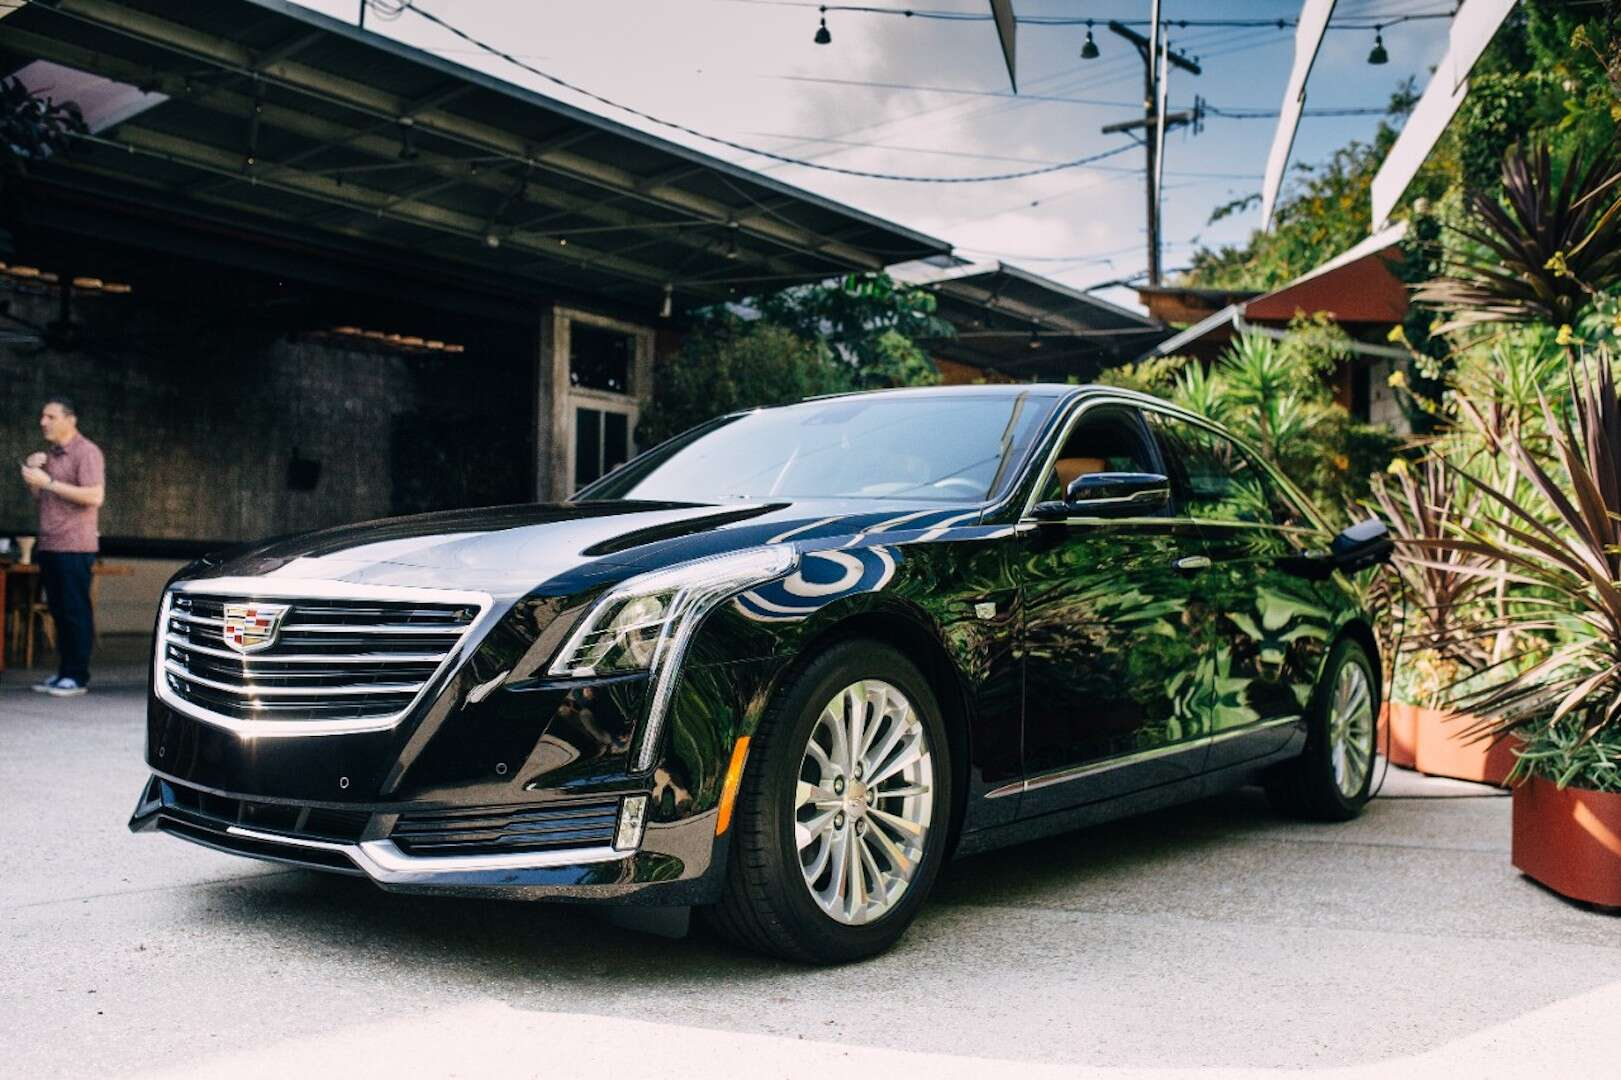 2018 Cadillac CT6 2.0E Plug-In Hybrid: Unplugged, There's ...